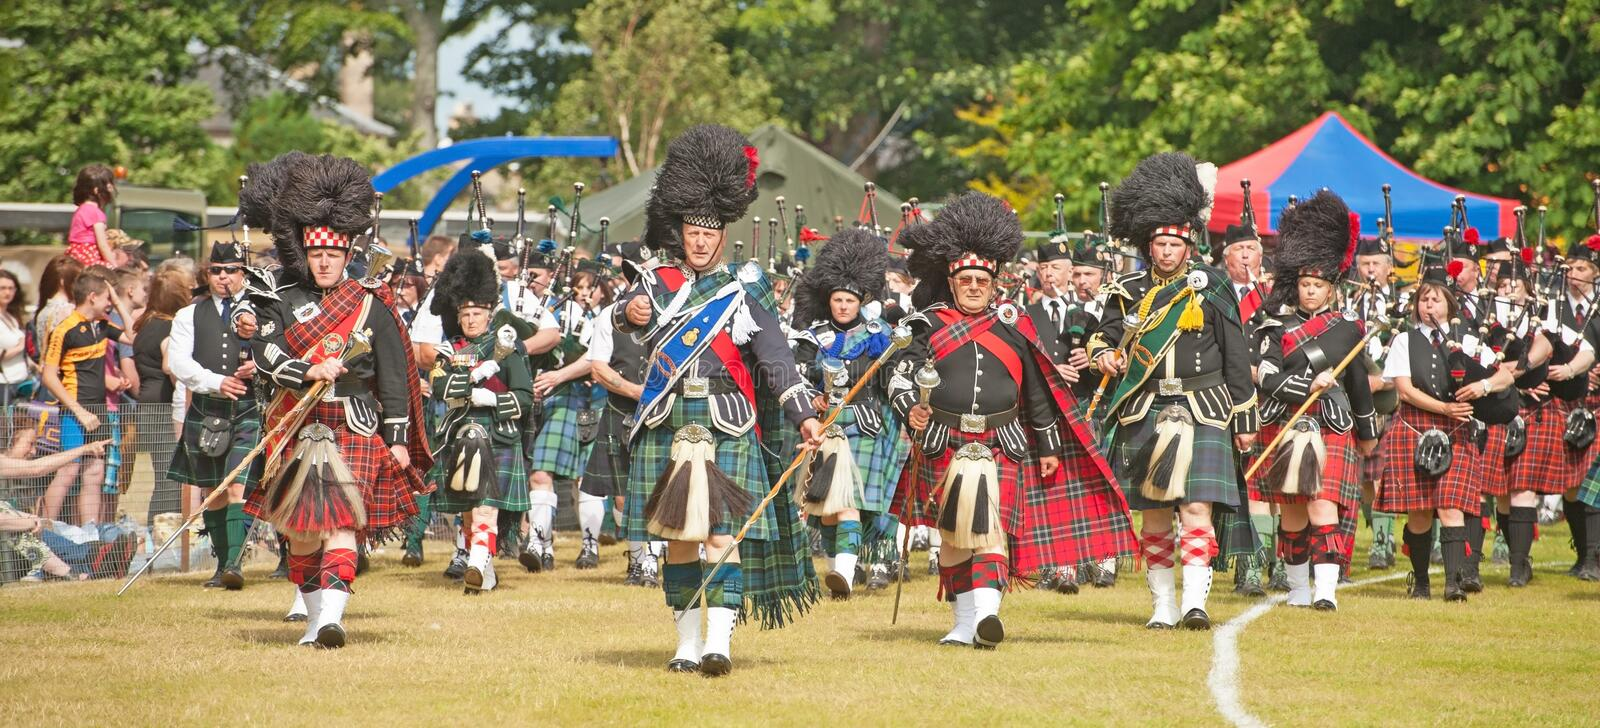 came pipe band is drum continuously bands oldest seaforth existence organization pipes of in regiment after inception drums active and the highlanders shortly canada today into